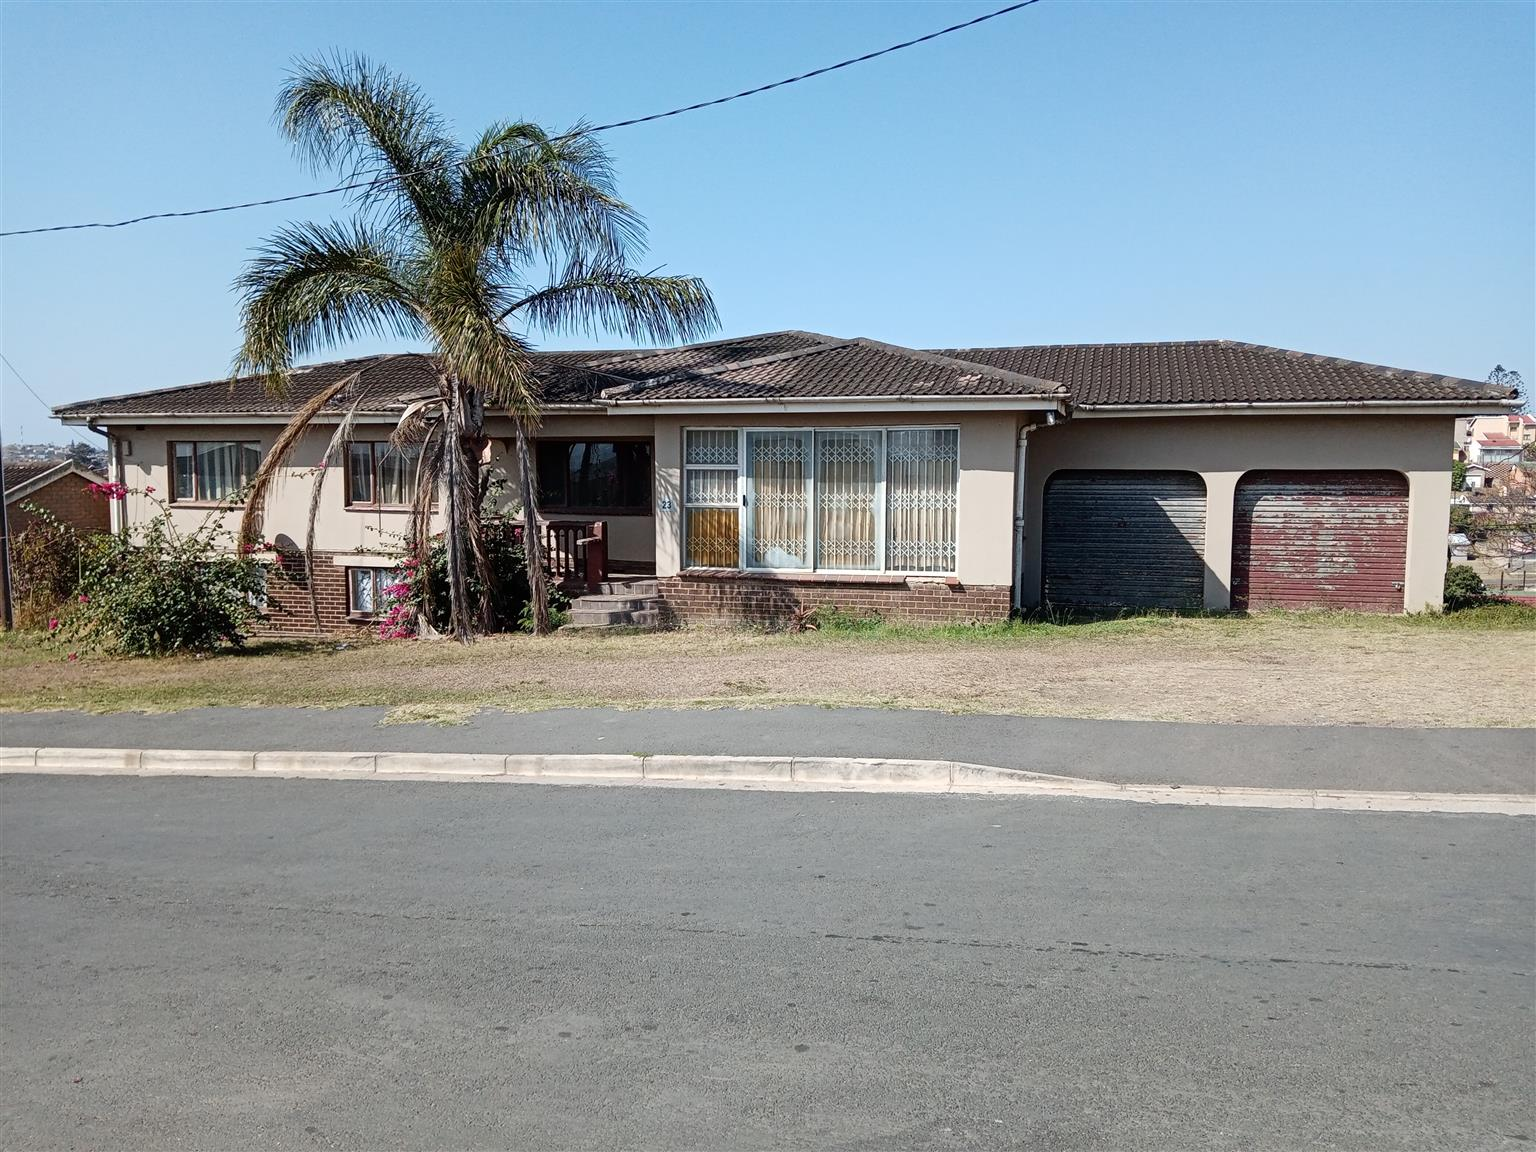 House for Rent in KwaMashu